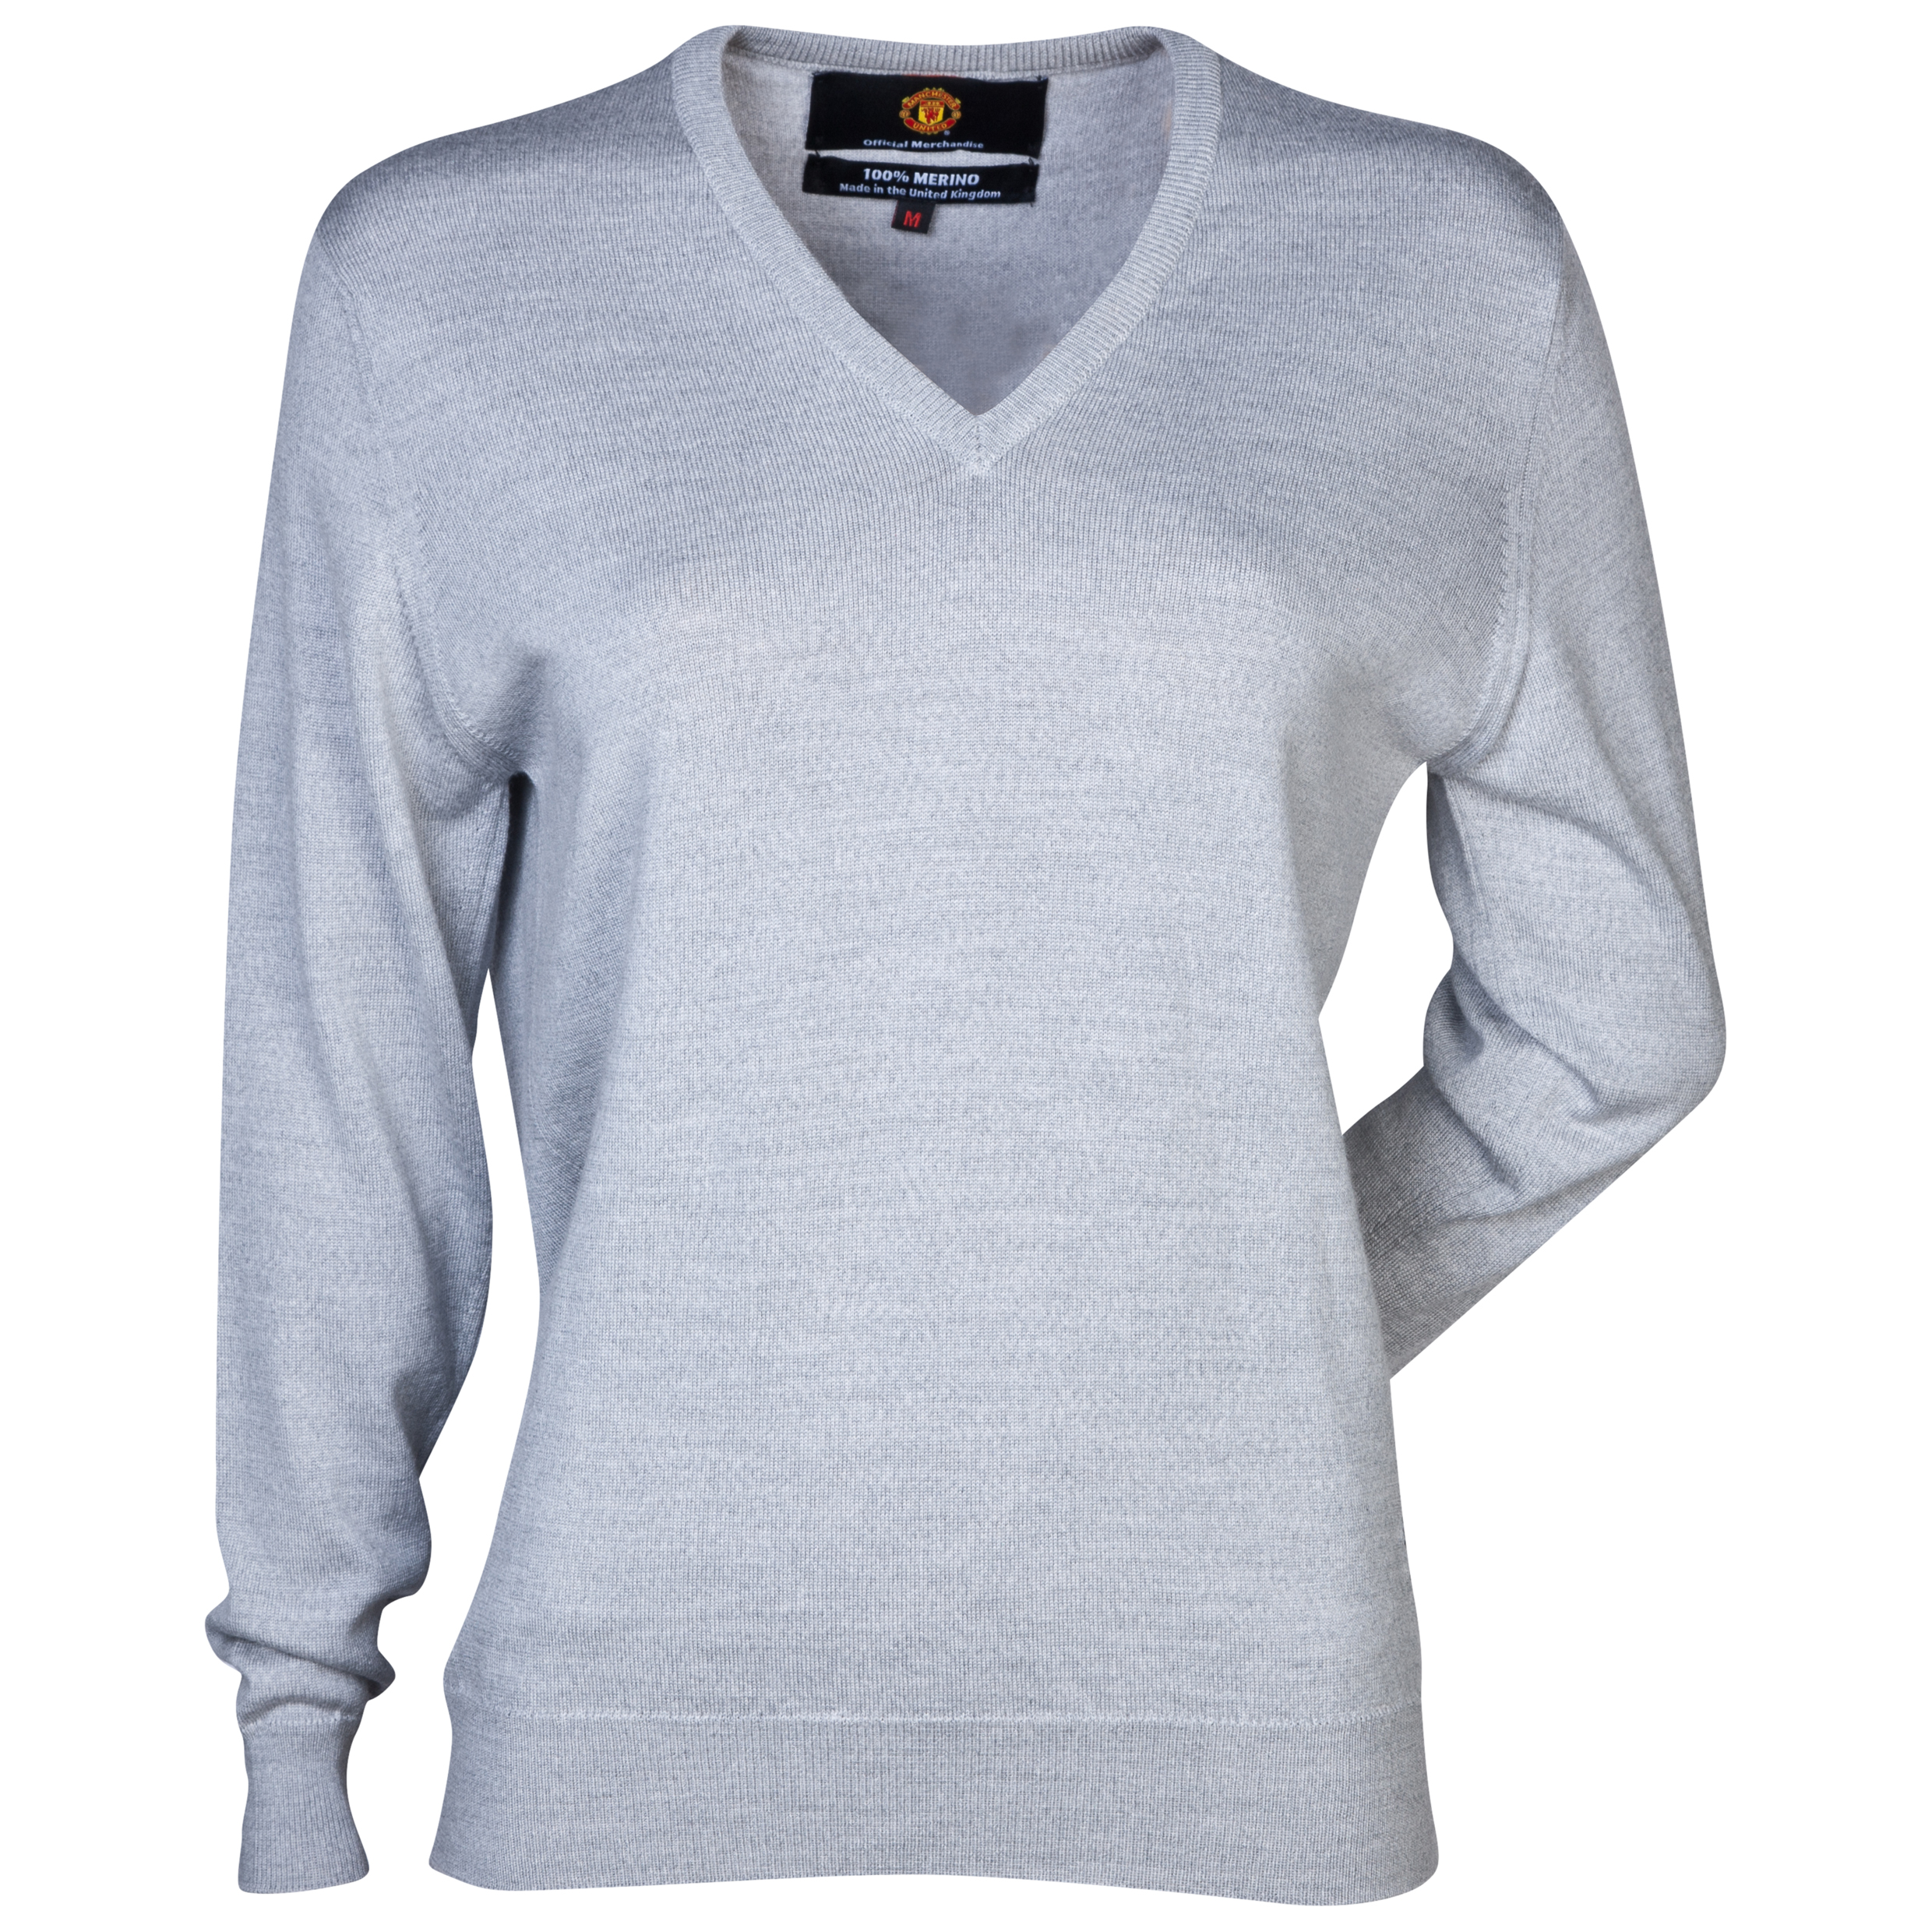 Manchester United Merino V Neck Sweater - Womens Grey